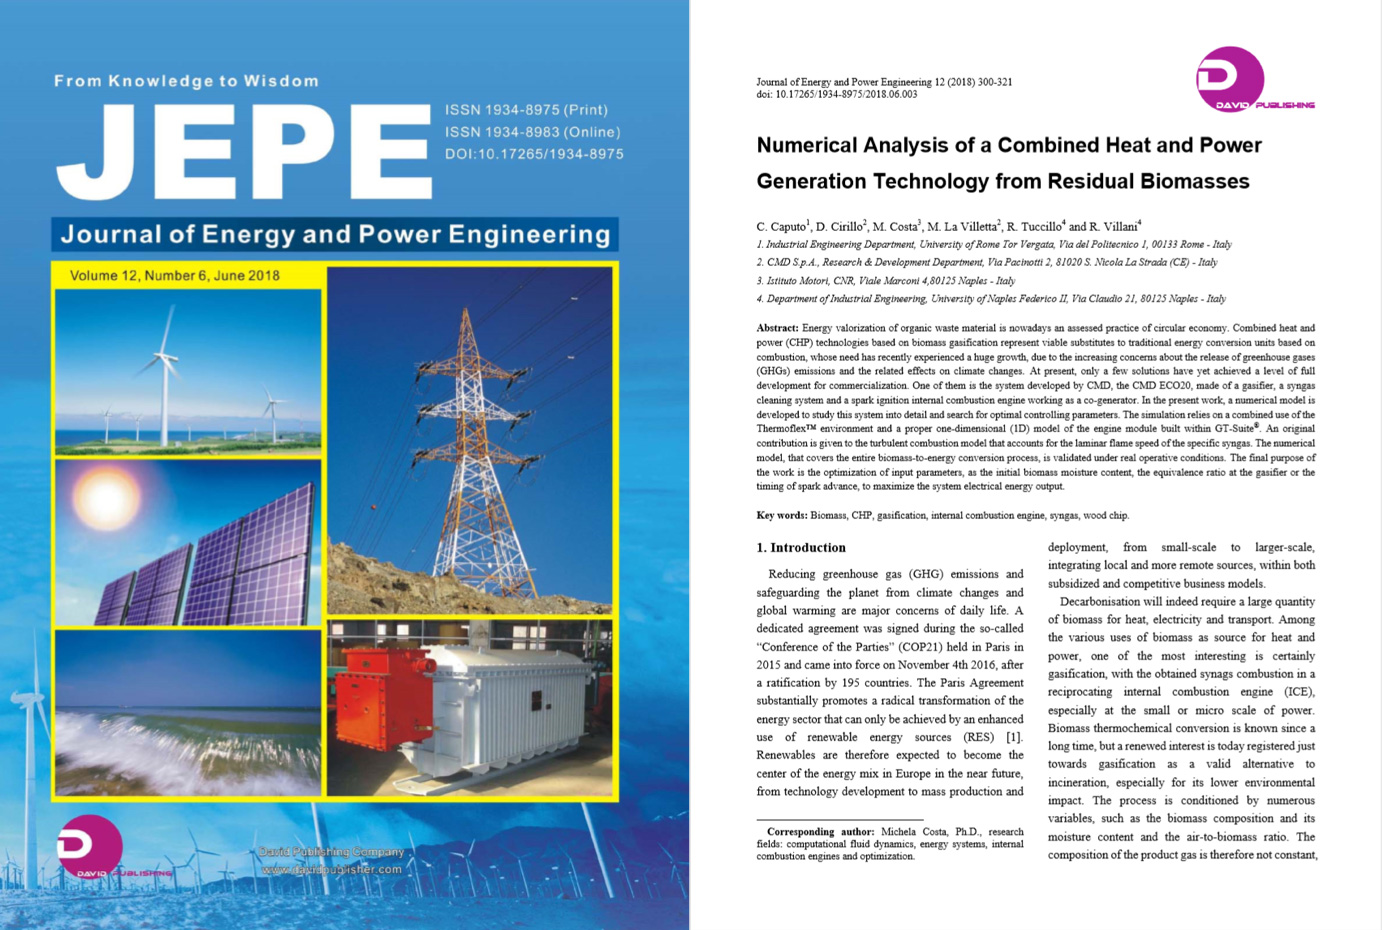 journal-of-energy-power-engineering-copenaghen-2018-innovare-bio-energia-progetto-energie-rinnovabili-green-energy